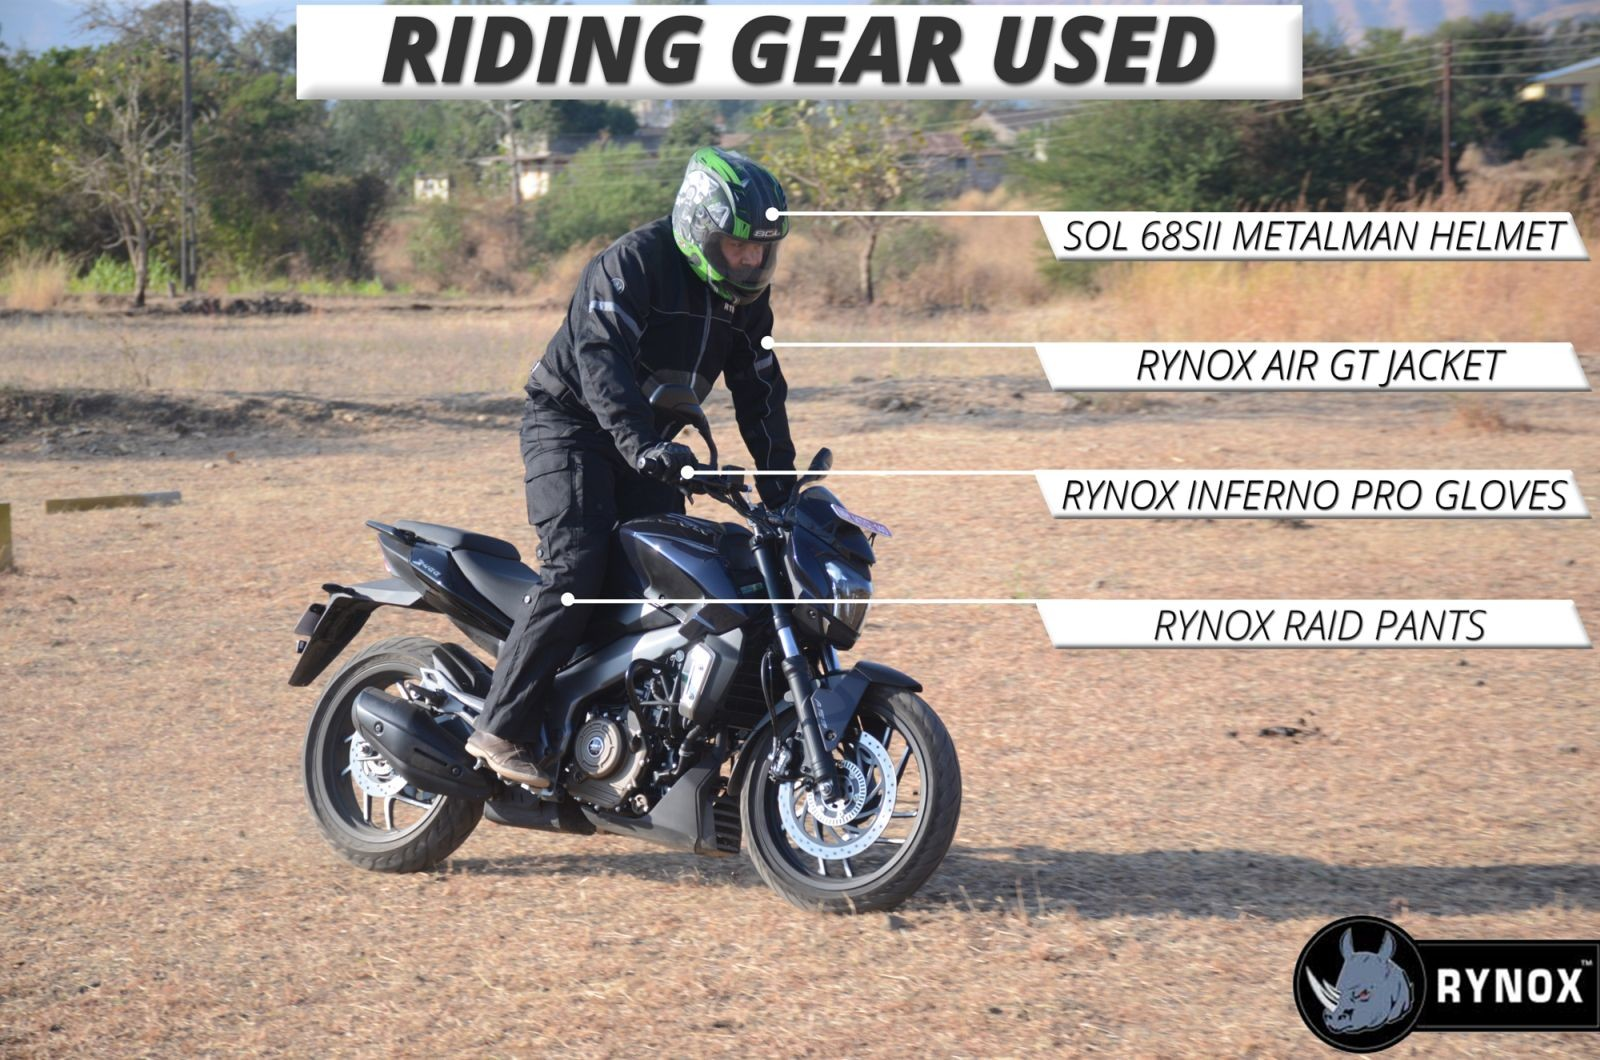 Bajaj-Dominar-400-Riding-Gear-